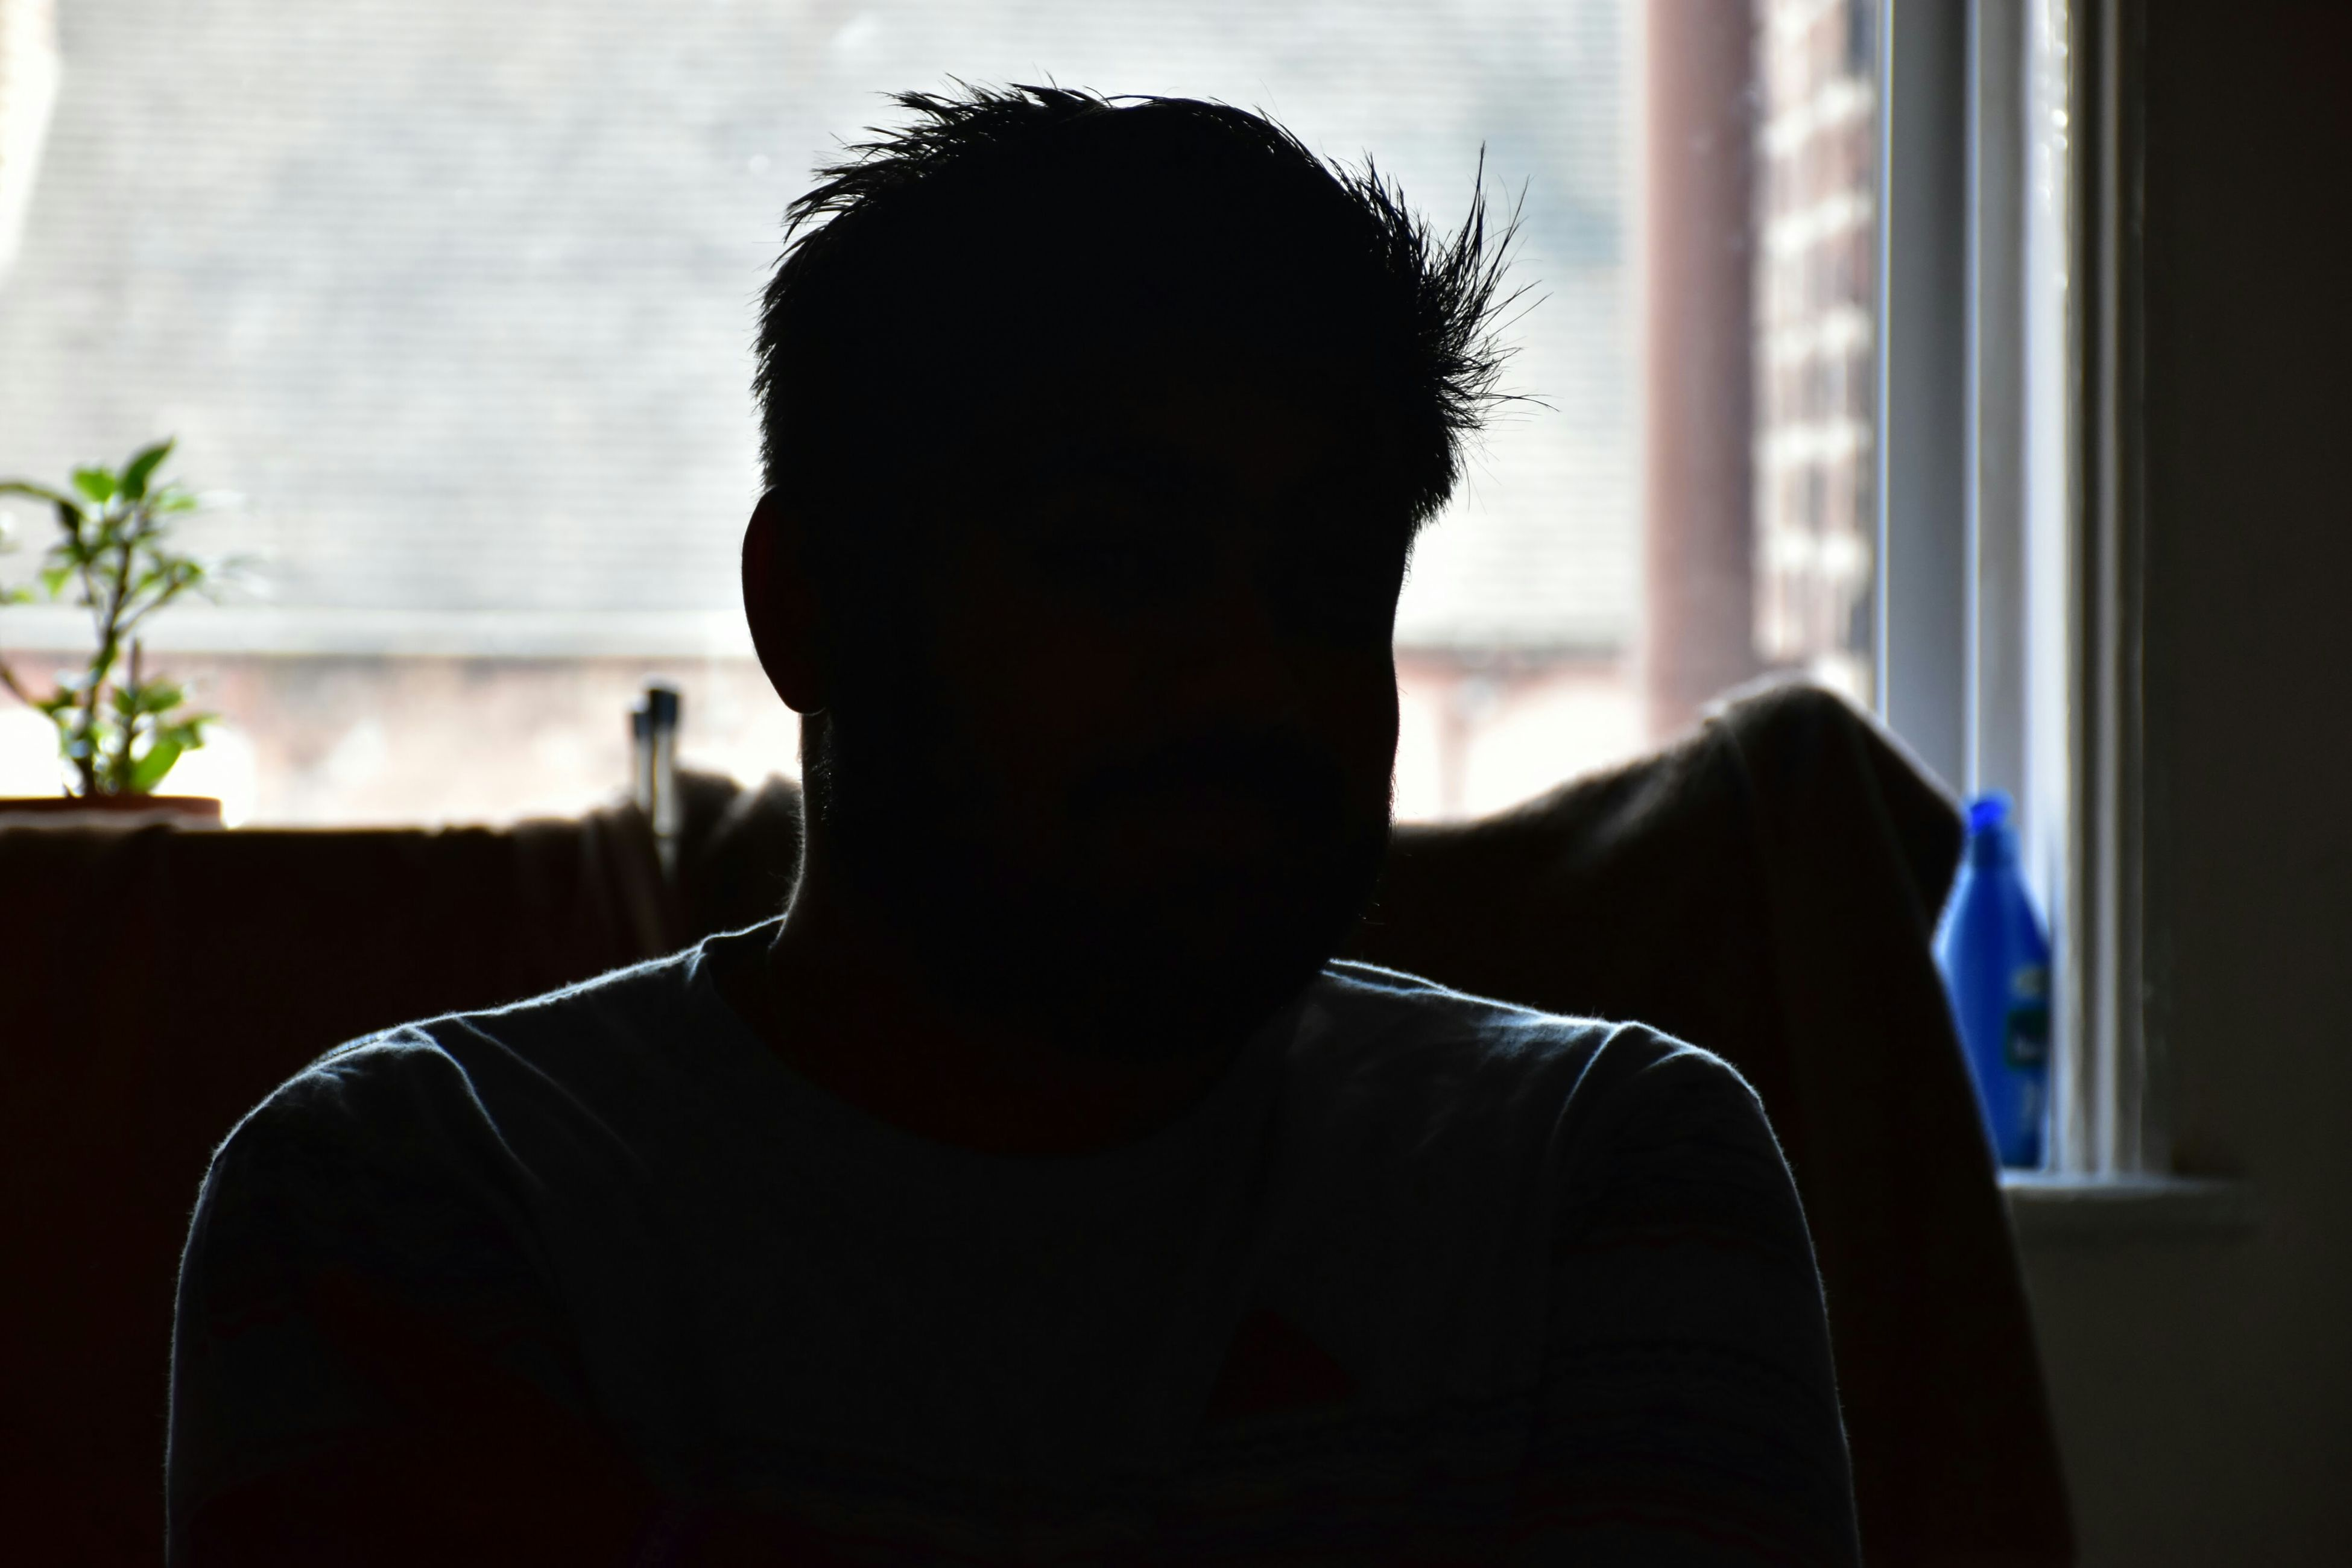 indoors, window, relaxation, sitting, lifestyles, rear view, silhouette, home interior, side view, leisure activity, person, sunlight, focus on foreground, day, men, sofa, looking through window, resting